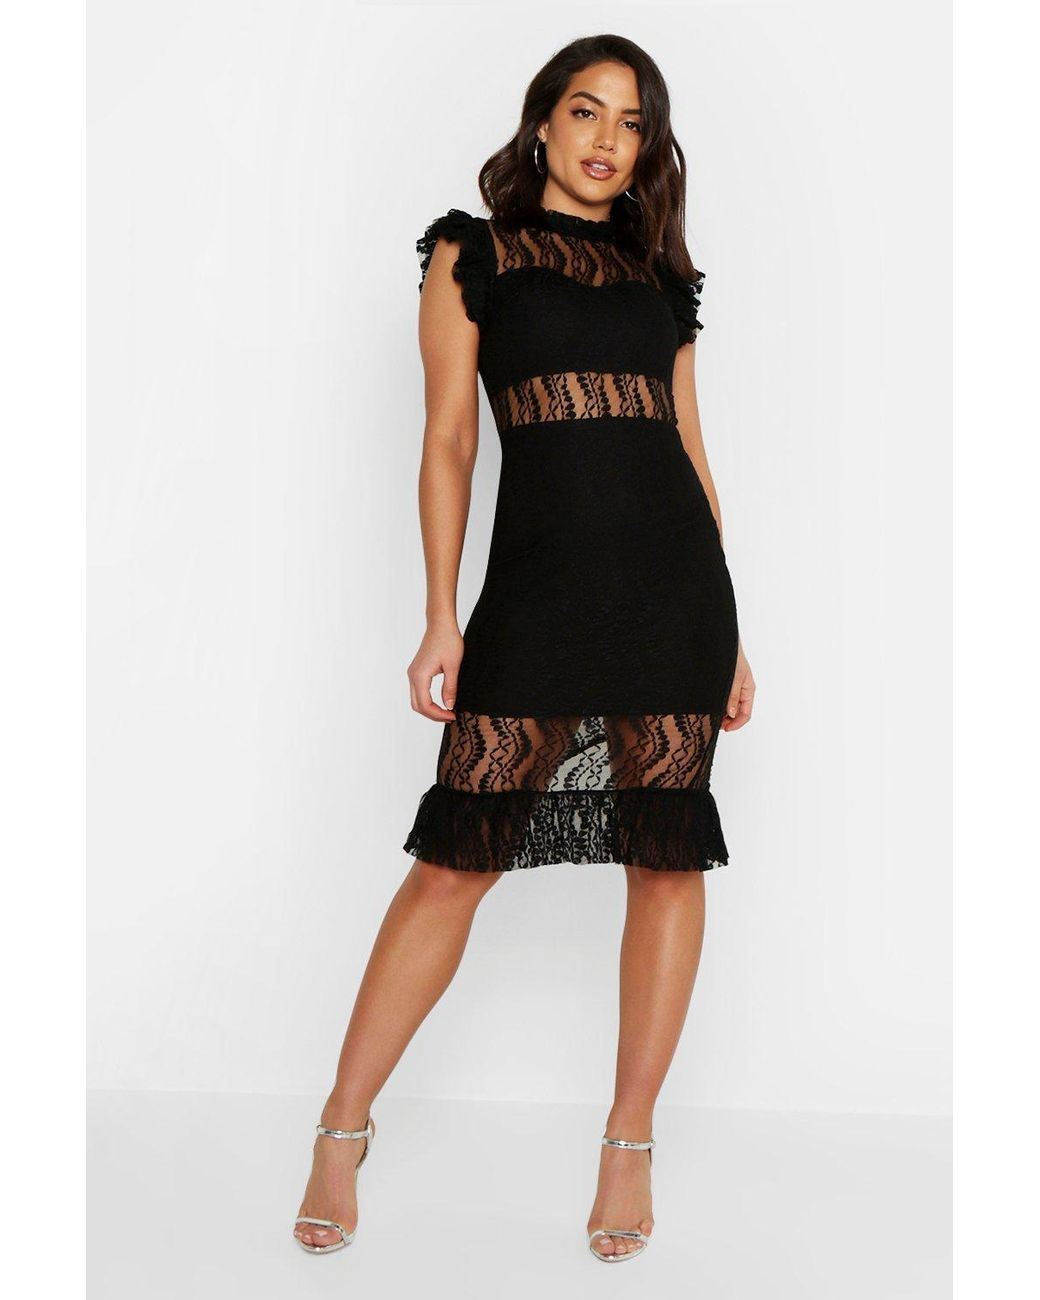 a7f5ff816406f Long-Touch to Zoom. Long-Touch to Zoom. 1; 2. Boohoo - Black All Over Lace  Short Sleeve Midi Dress ...